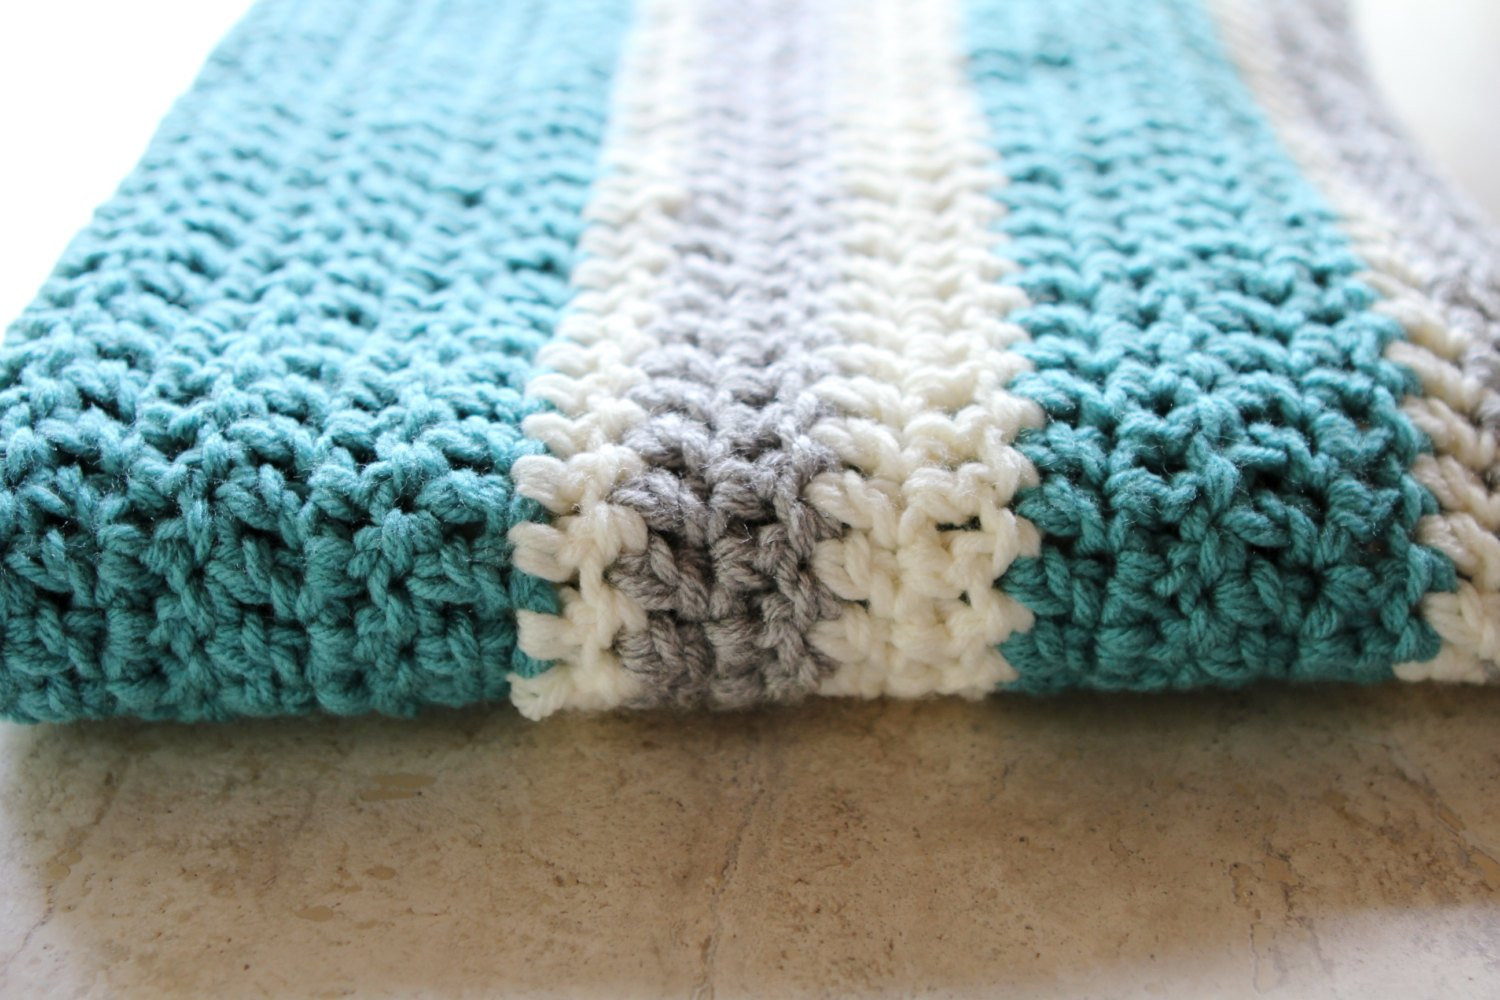 Modern Crochet Patterns New Chunky Striped Modern Crochet Baby Blanket Cream Aqua Of Adorable 44 Pictures Modern Crochet Patterns